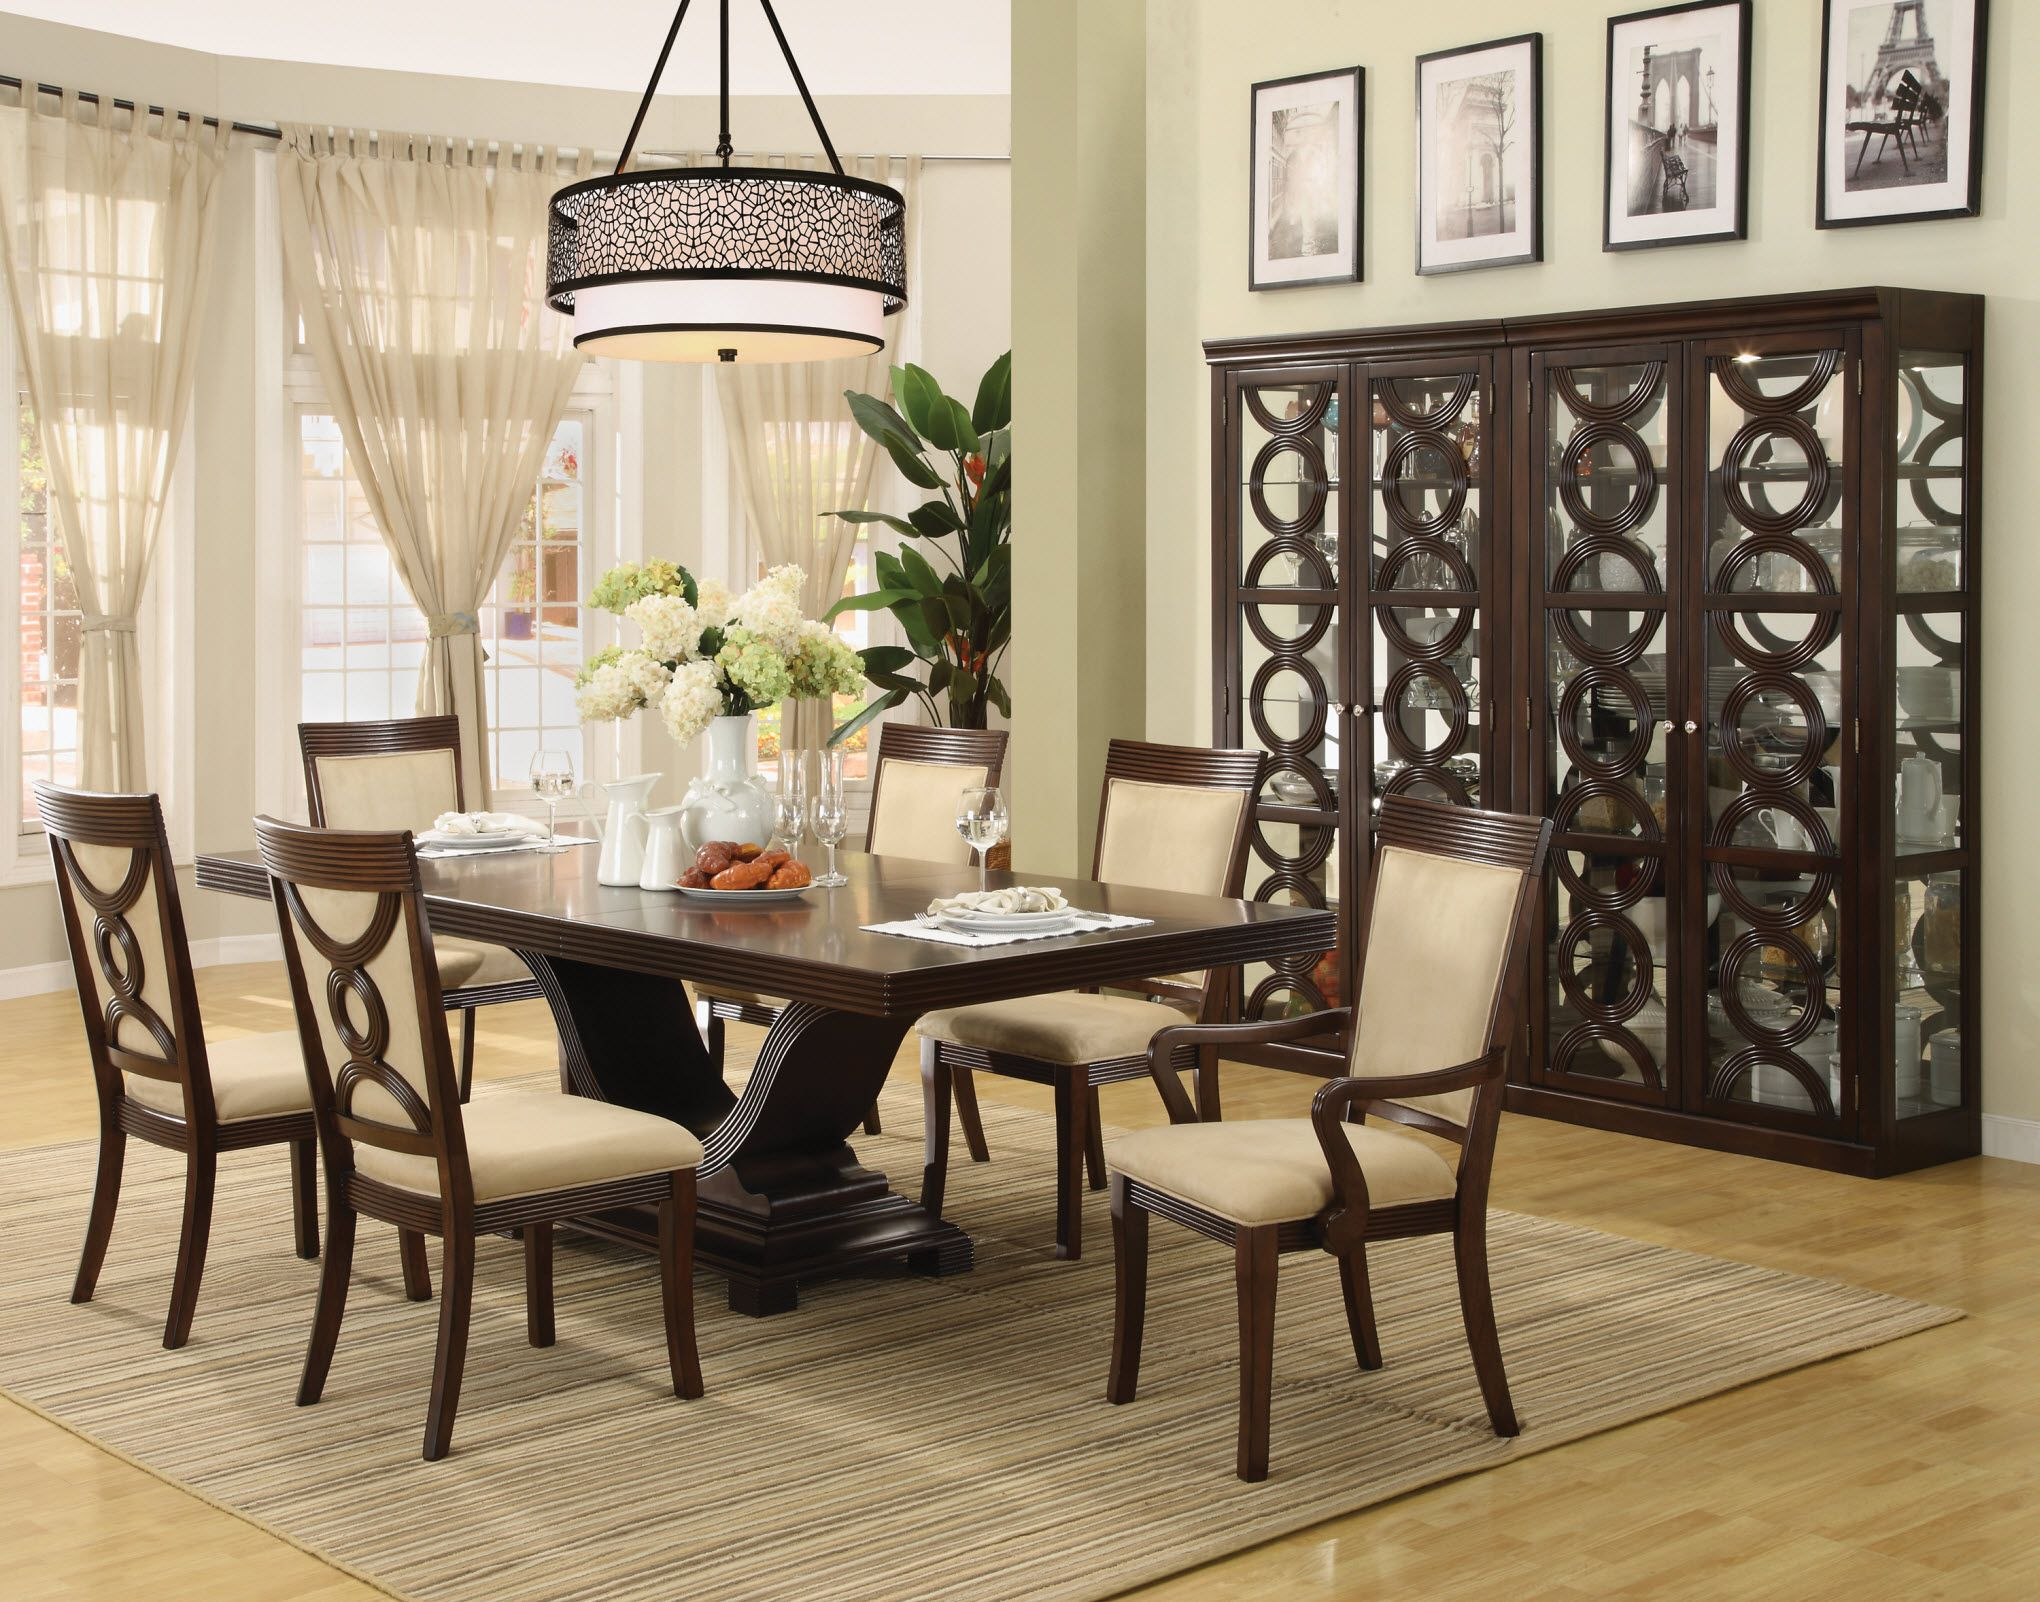 Amazing Contemporary Dining Rooms 12 Formal Room Table Centerpiece Ideas